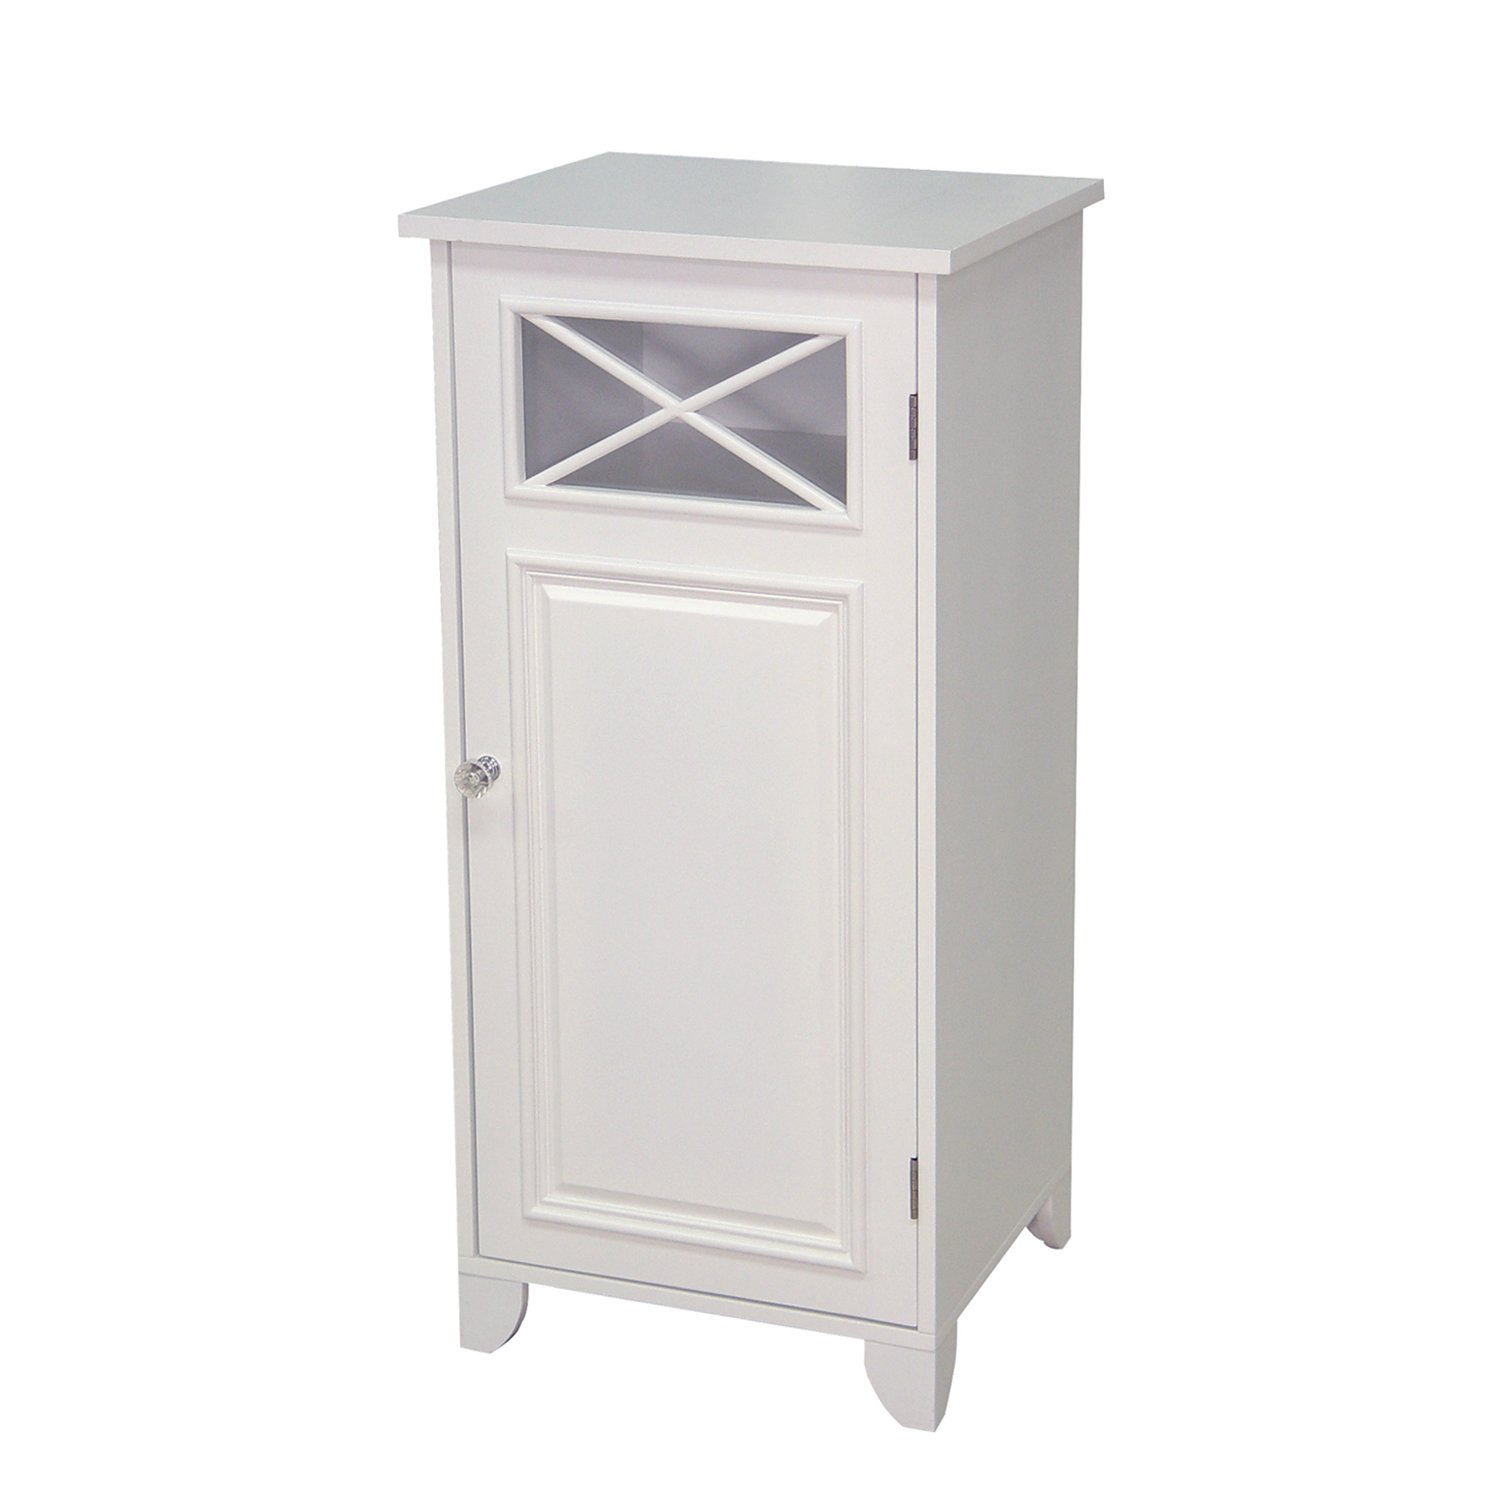 Amazon.com: Elegant Home Fashions Dawson Floor Cabinet With Single ...